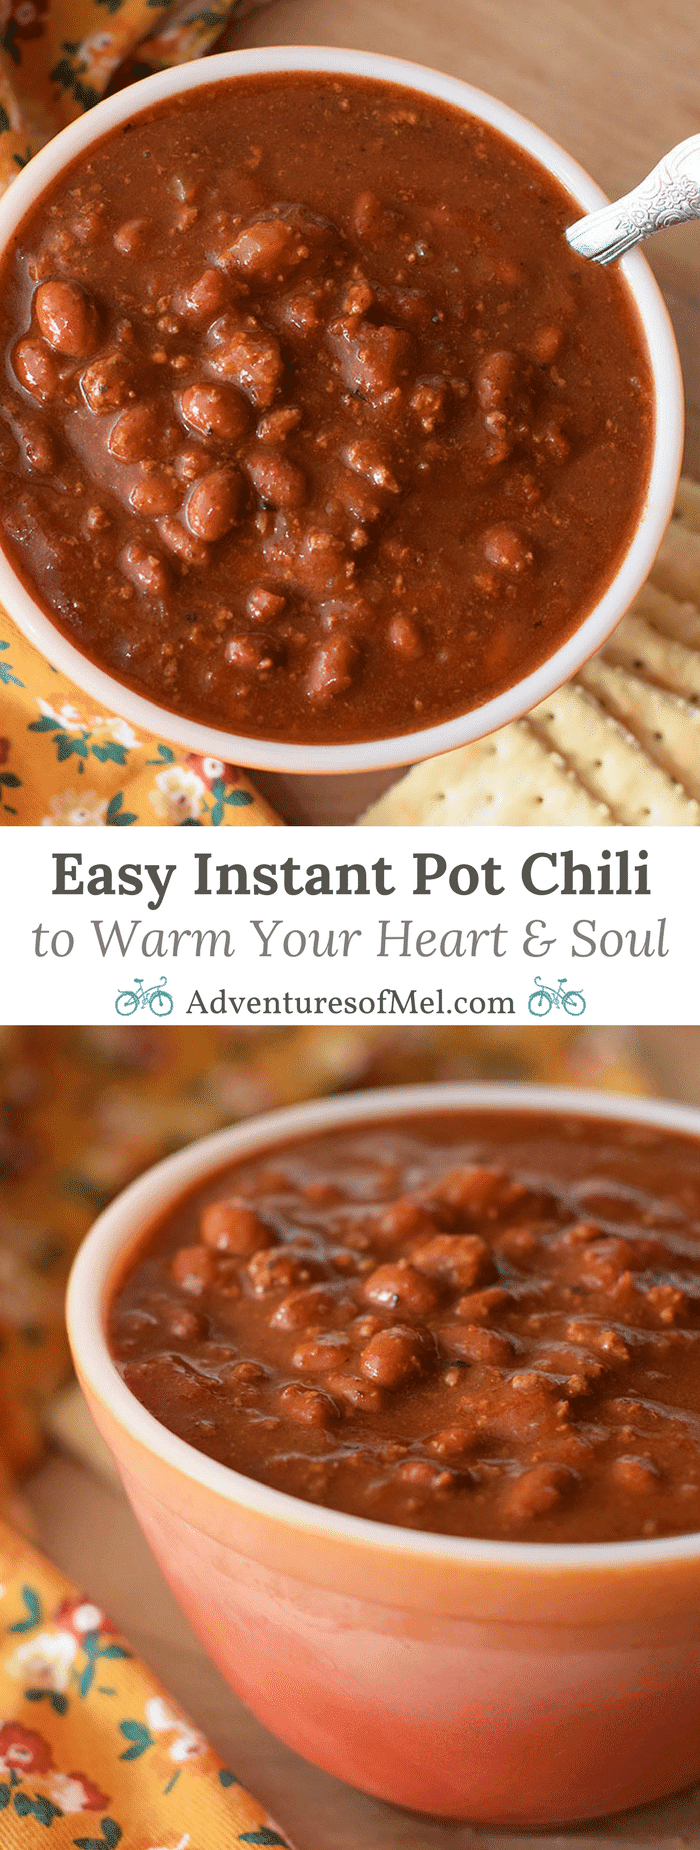 Chilly nights call for a nice hot bowl of homemade chili to warm your heart and soul. Print an easy Instant Pot chili recipe! Best served with cornbread and a dollop of sour cream.